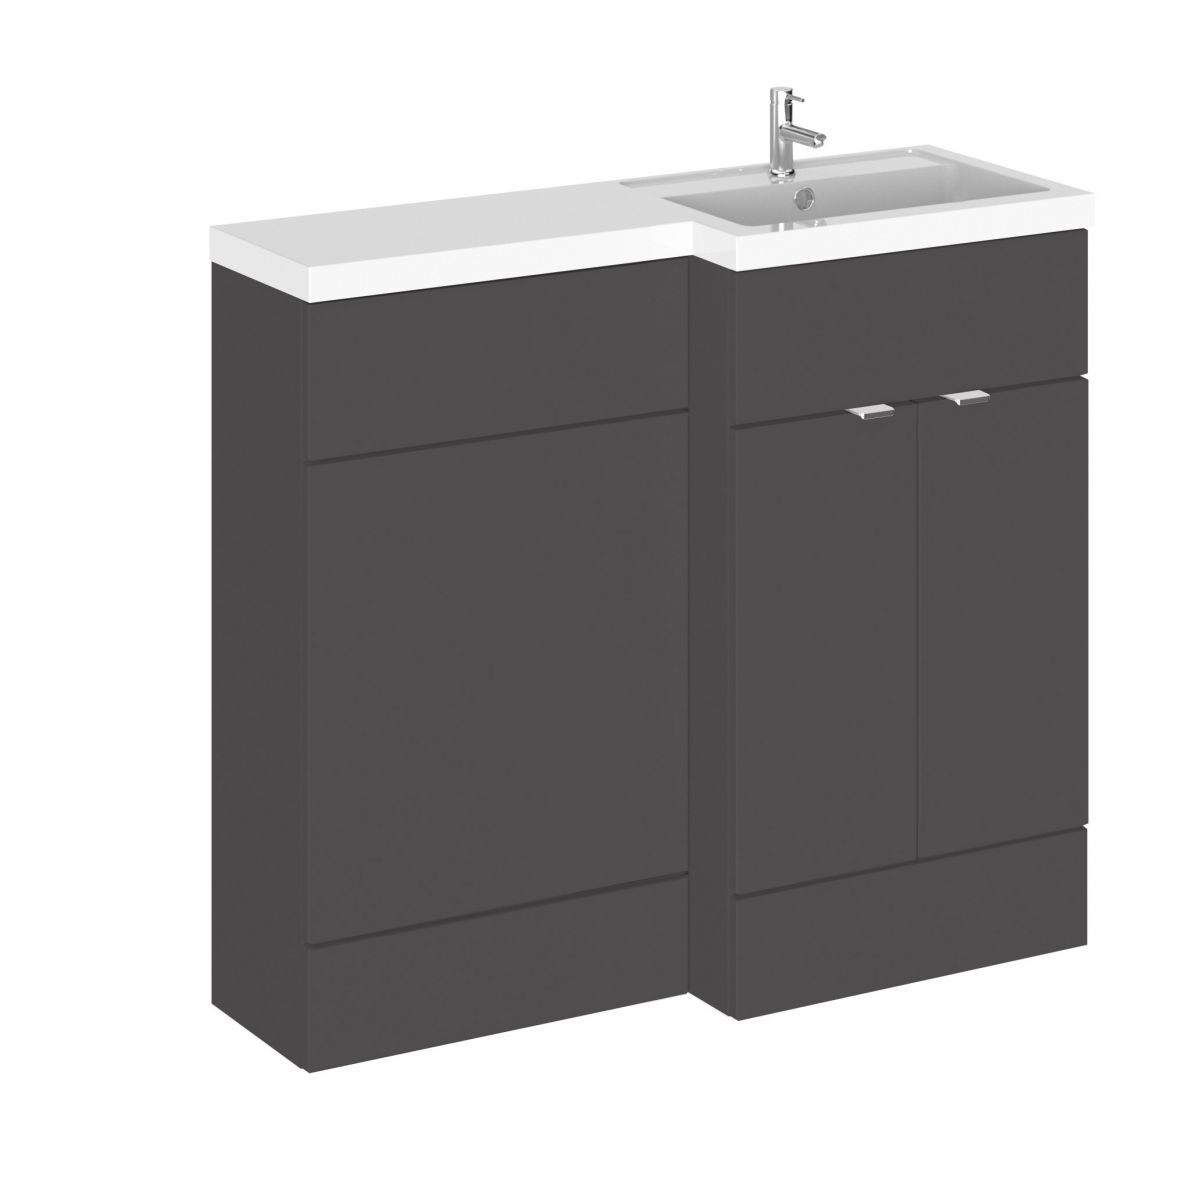 Hudson Reed Fusion Gloss Grey Full Depth Combination Furniture Pack 1000mm